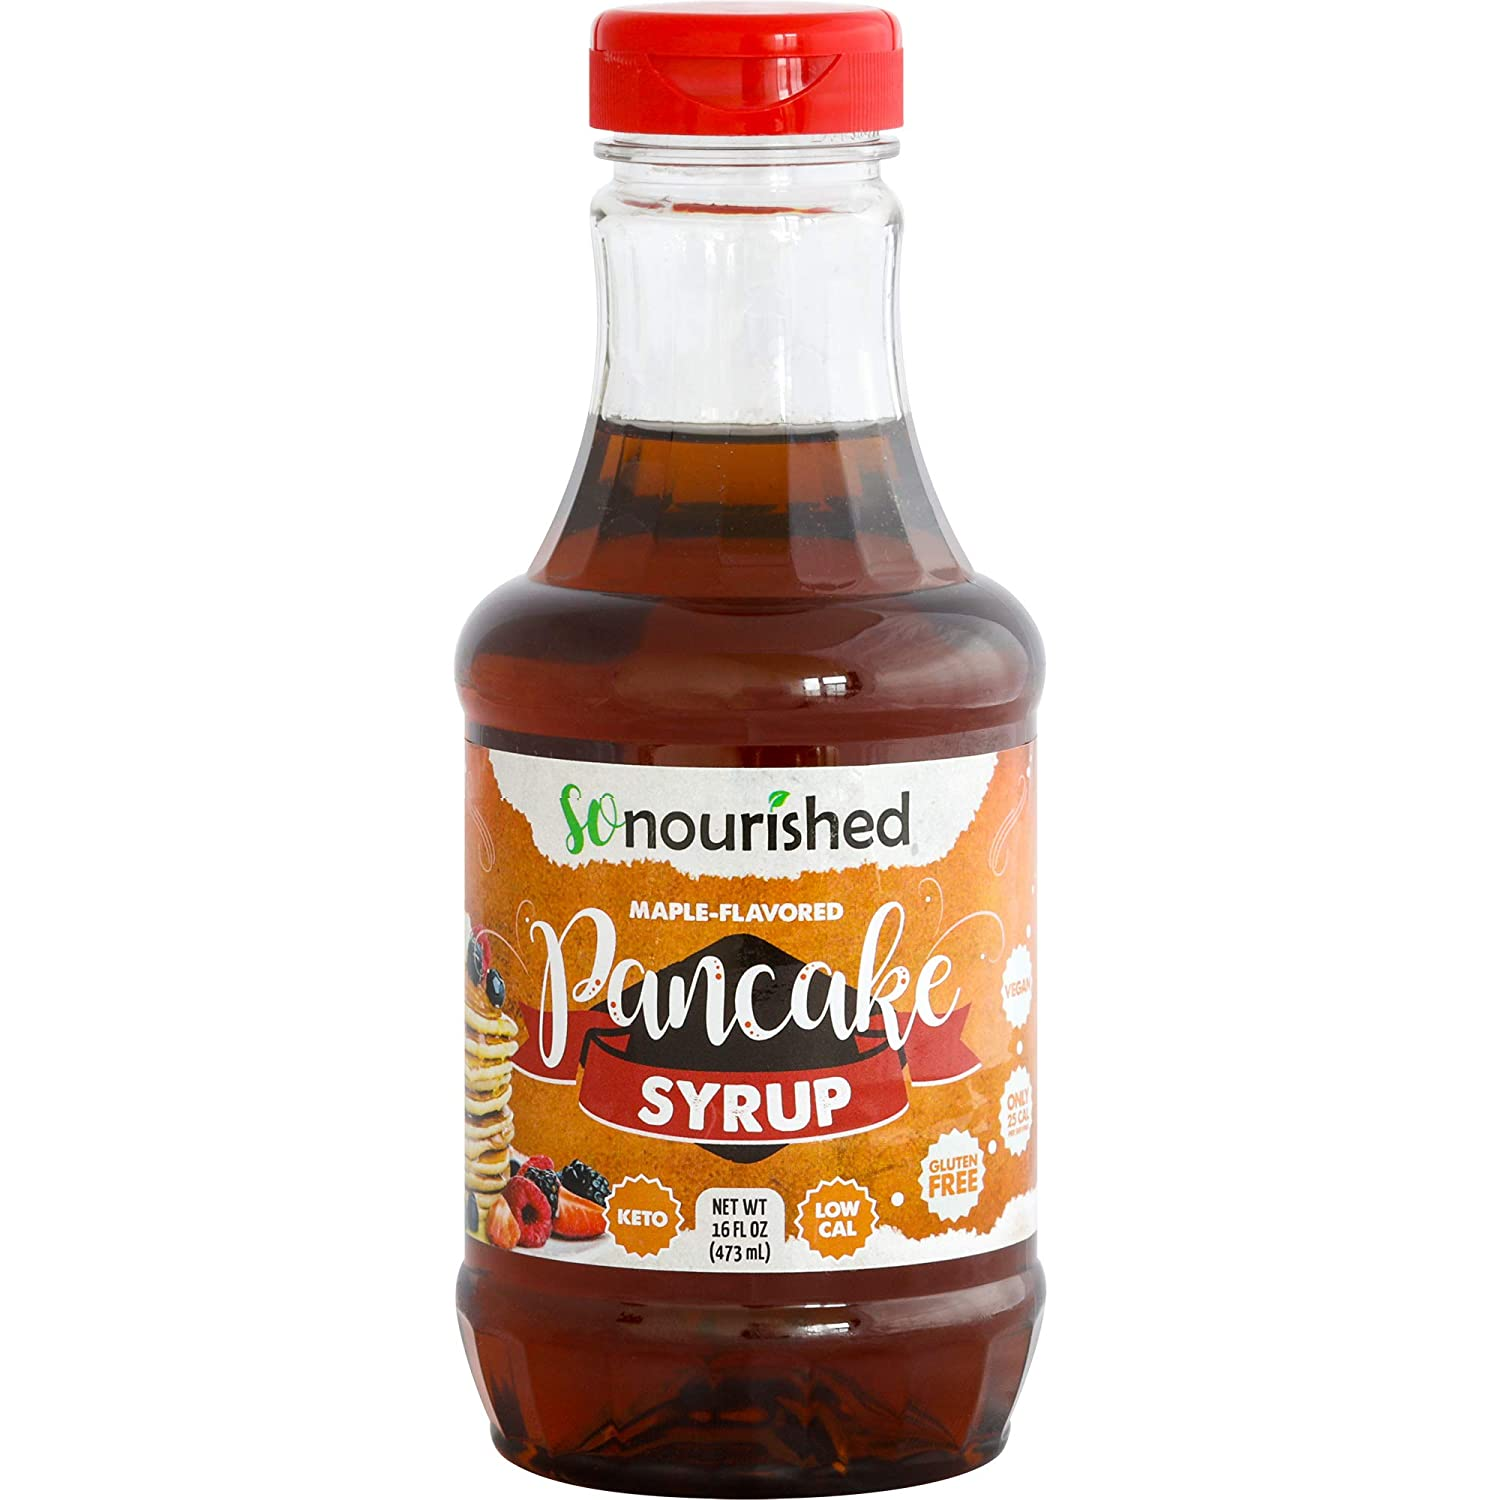 Keto Pancake Maple Syrup by So Nourished - 16 FL OZ - 1g Net Carb, Sugar Free Syrup, Made in USA, Low Calorie, Low Carb, Gluten-Free, Vegan